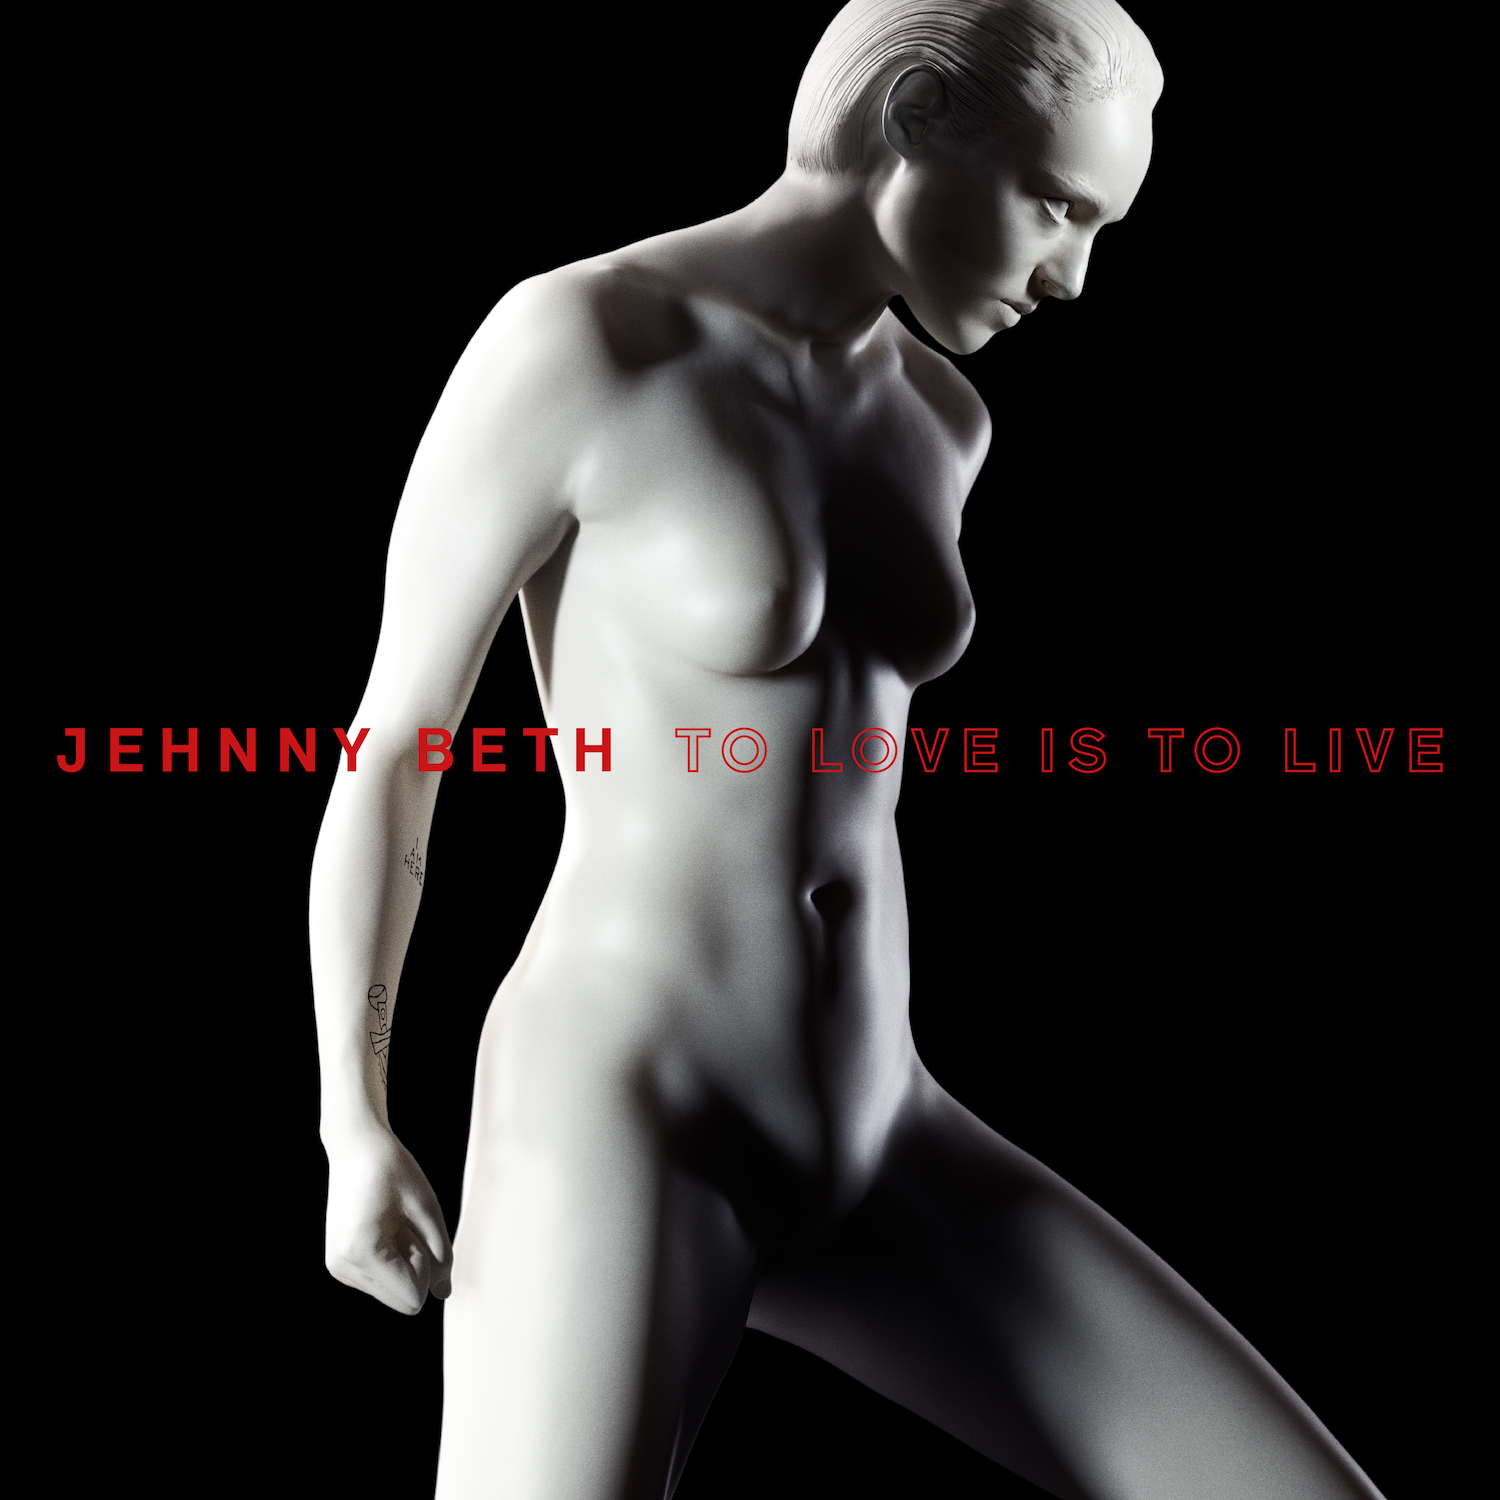 Jehnny Beth Savages solo album to love is to live cover artwork